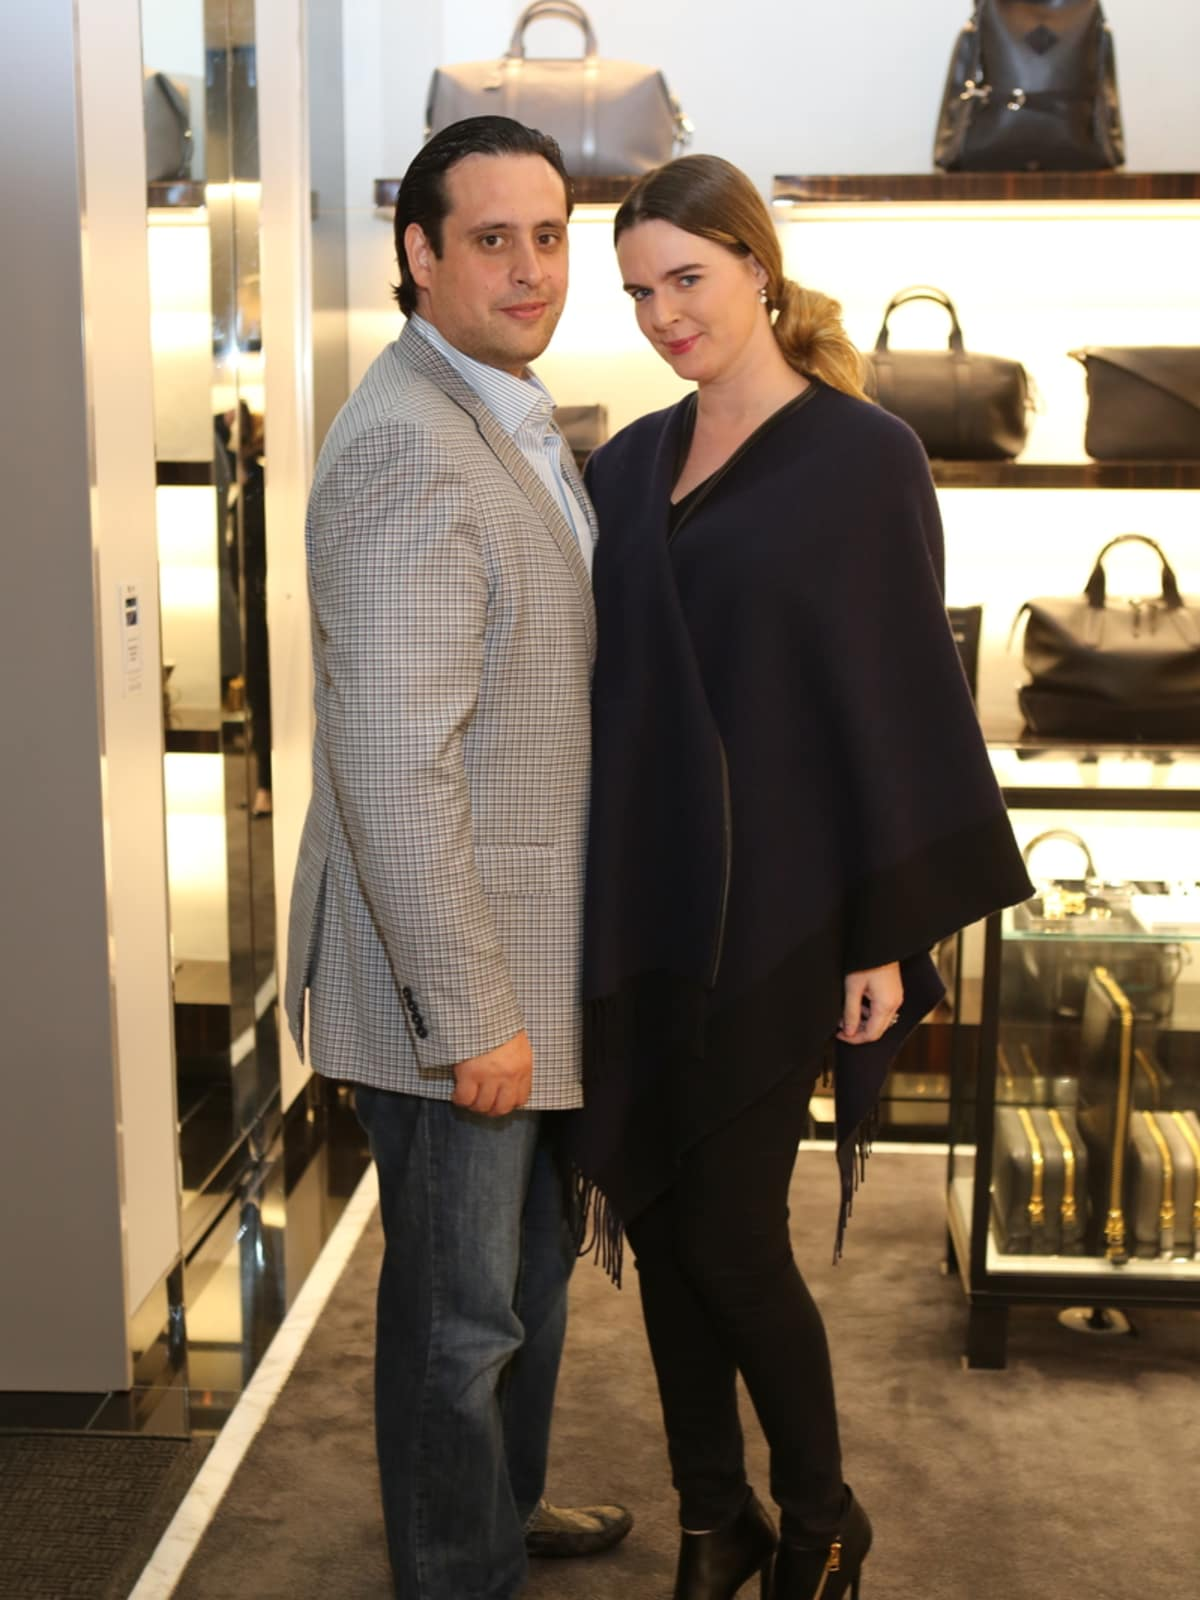 Luis Sanchez Bauer, Eloise Frischkorn Bauer at Blue Cure party at Tom Ford